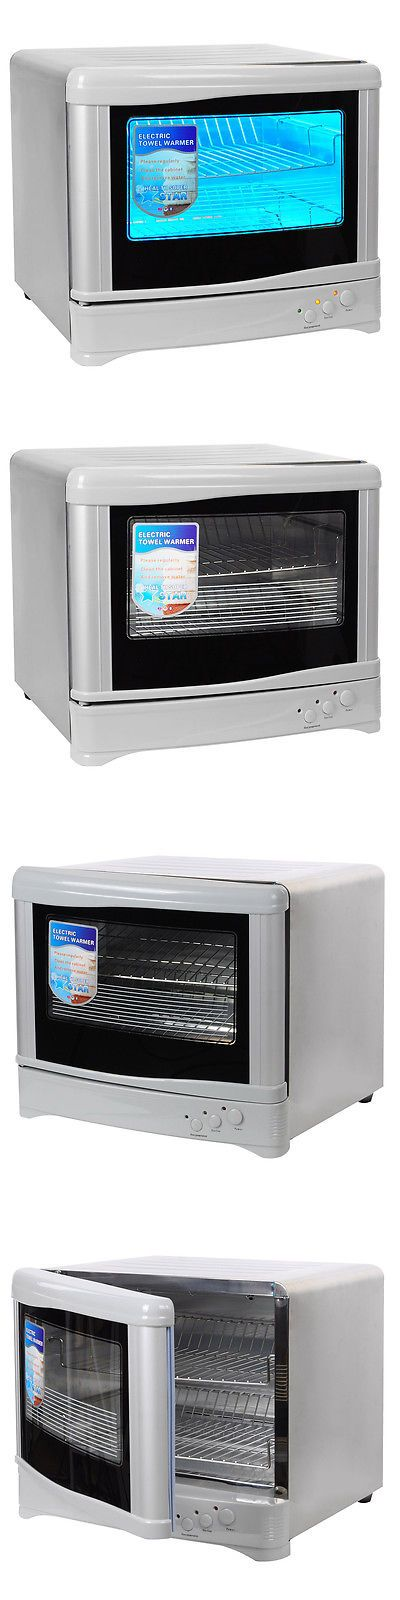 Sterilizers and Towel Warmers: 30L Hot Towel Warmer Cabinet Salon Uv Sterilizer 2In1 Spa Facial Nail Equipment -> BUY IT NOW ONLY: $114.9 on eBay!